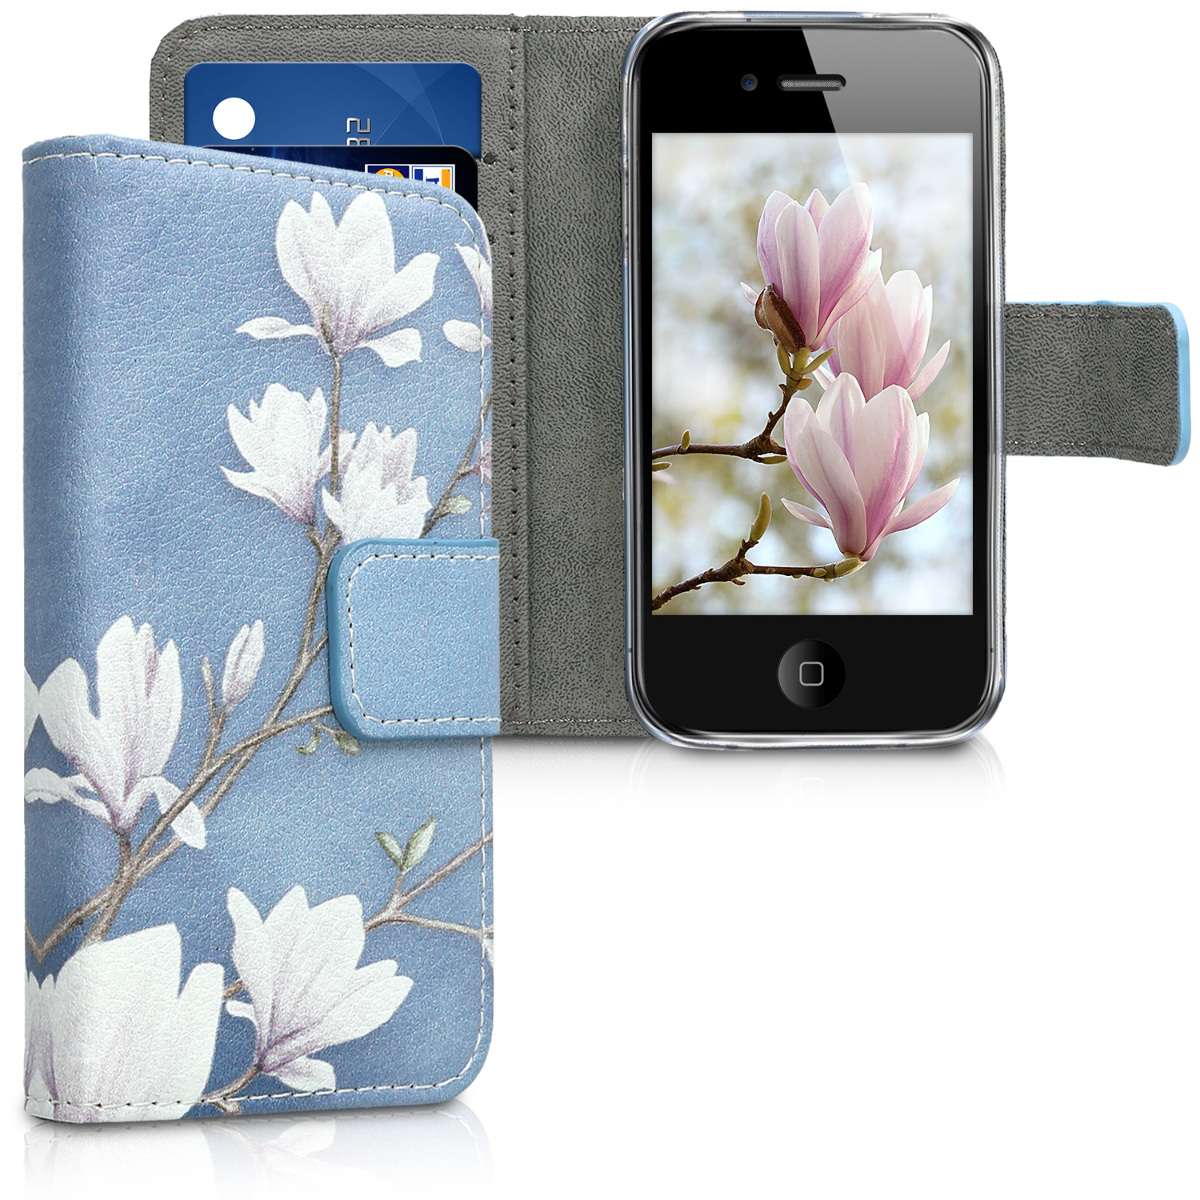 KW Θήκη - Πορτοφόλι Apple iPhone 4 / 4S - Leather Protective Flip Cover - Taupe / White / Blue Grey (16727.12)